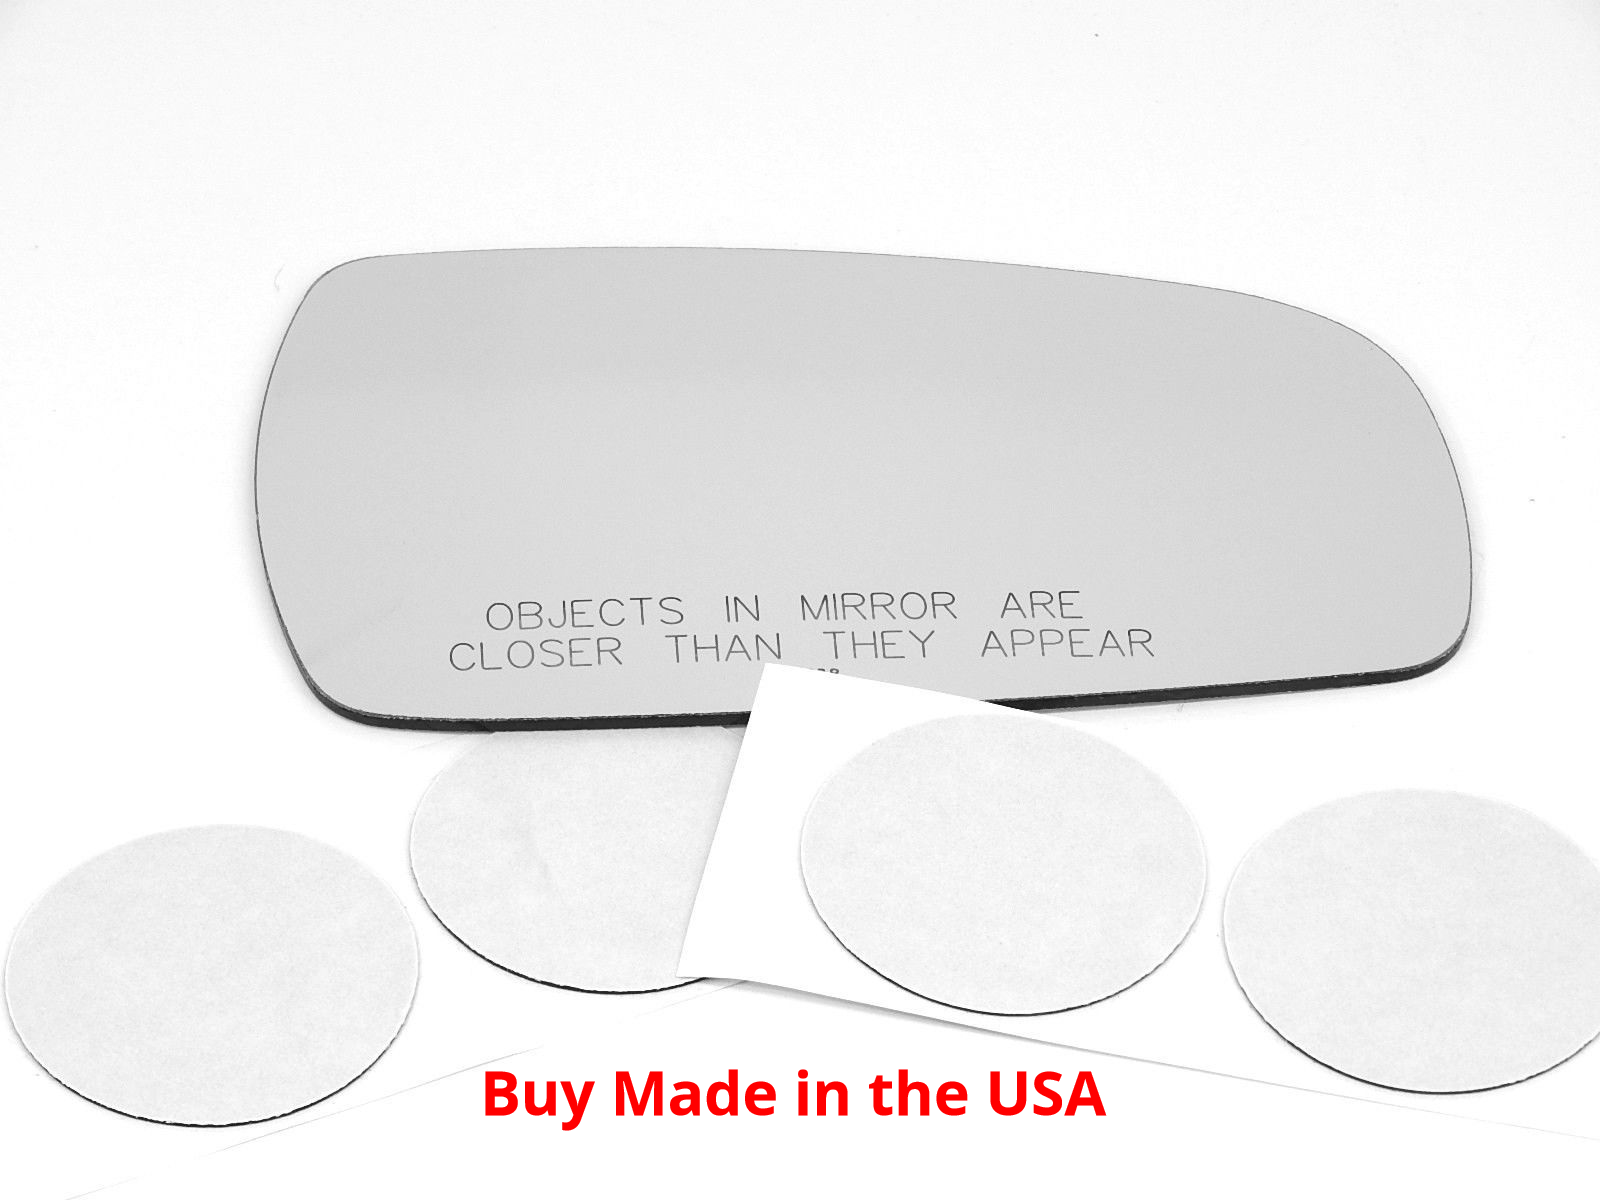 Right Pass Convex Mirror Glass Lens w/Adhesive Fits 95-99 Maxima 96-99 Inf. i30